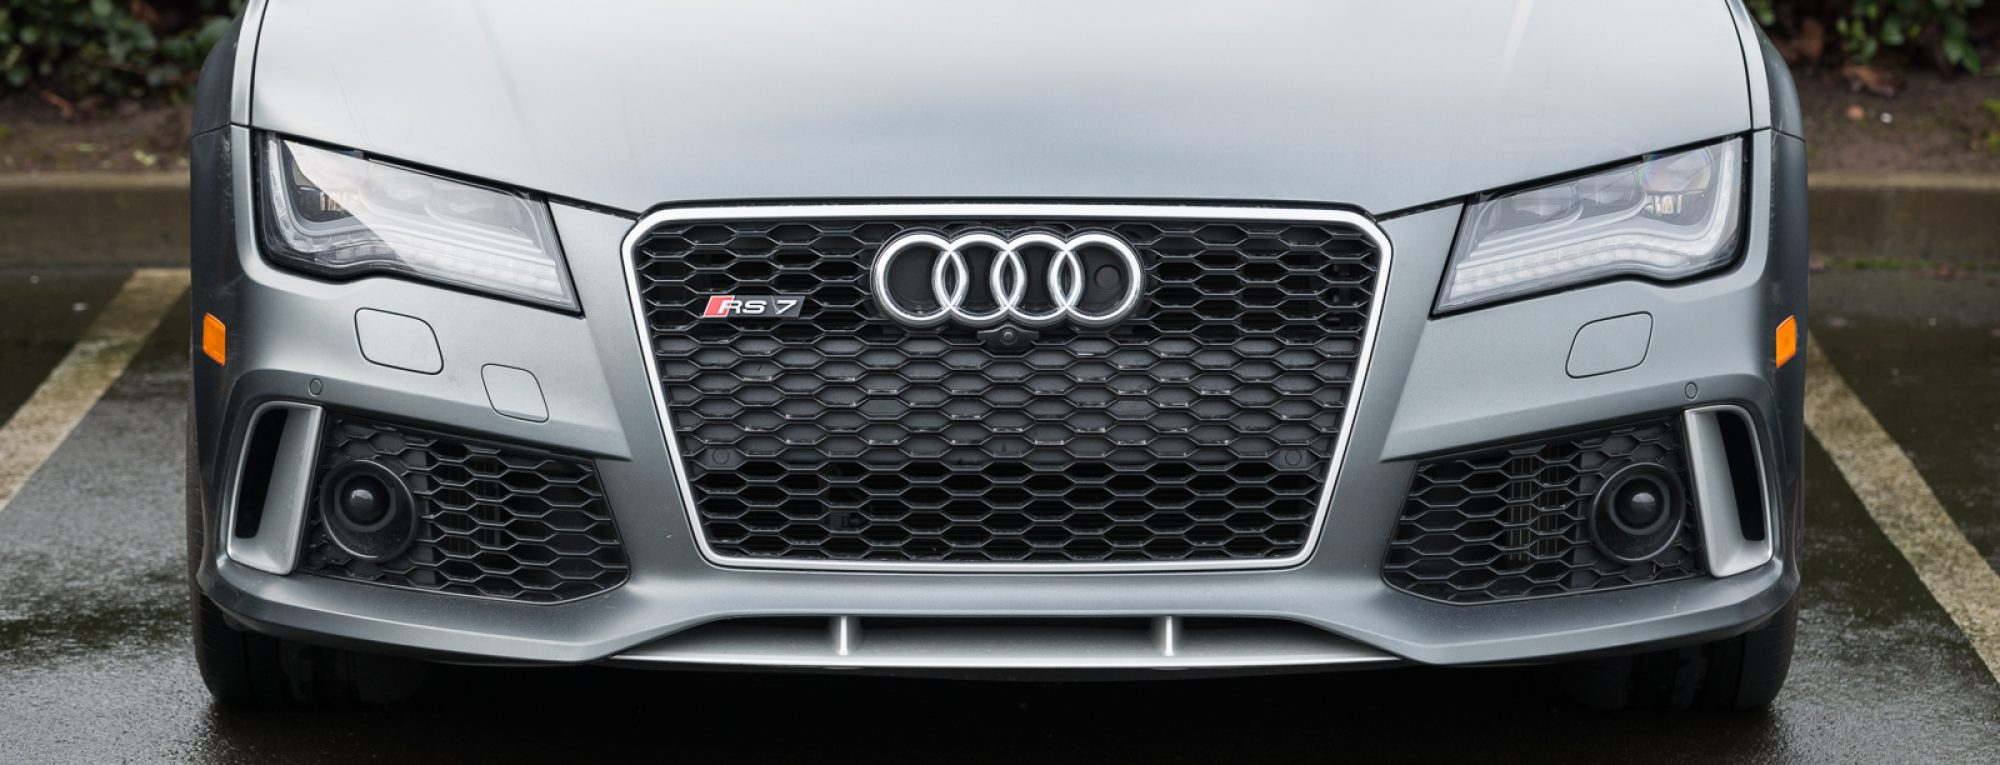 Audi For Life